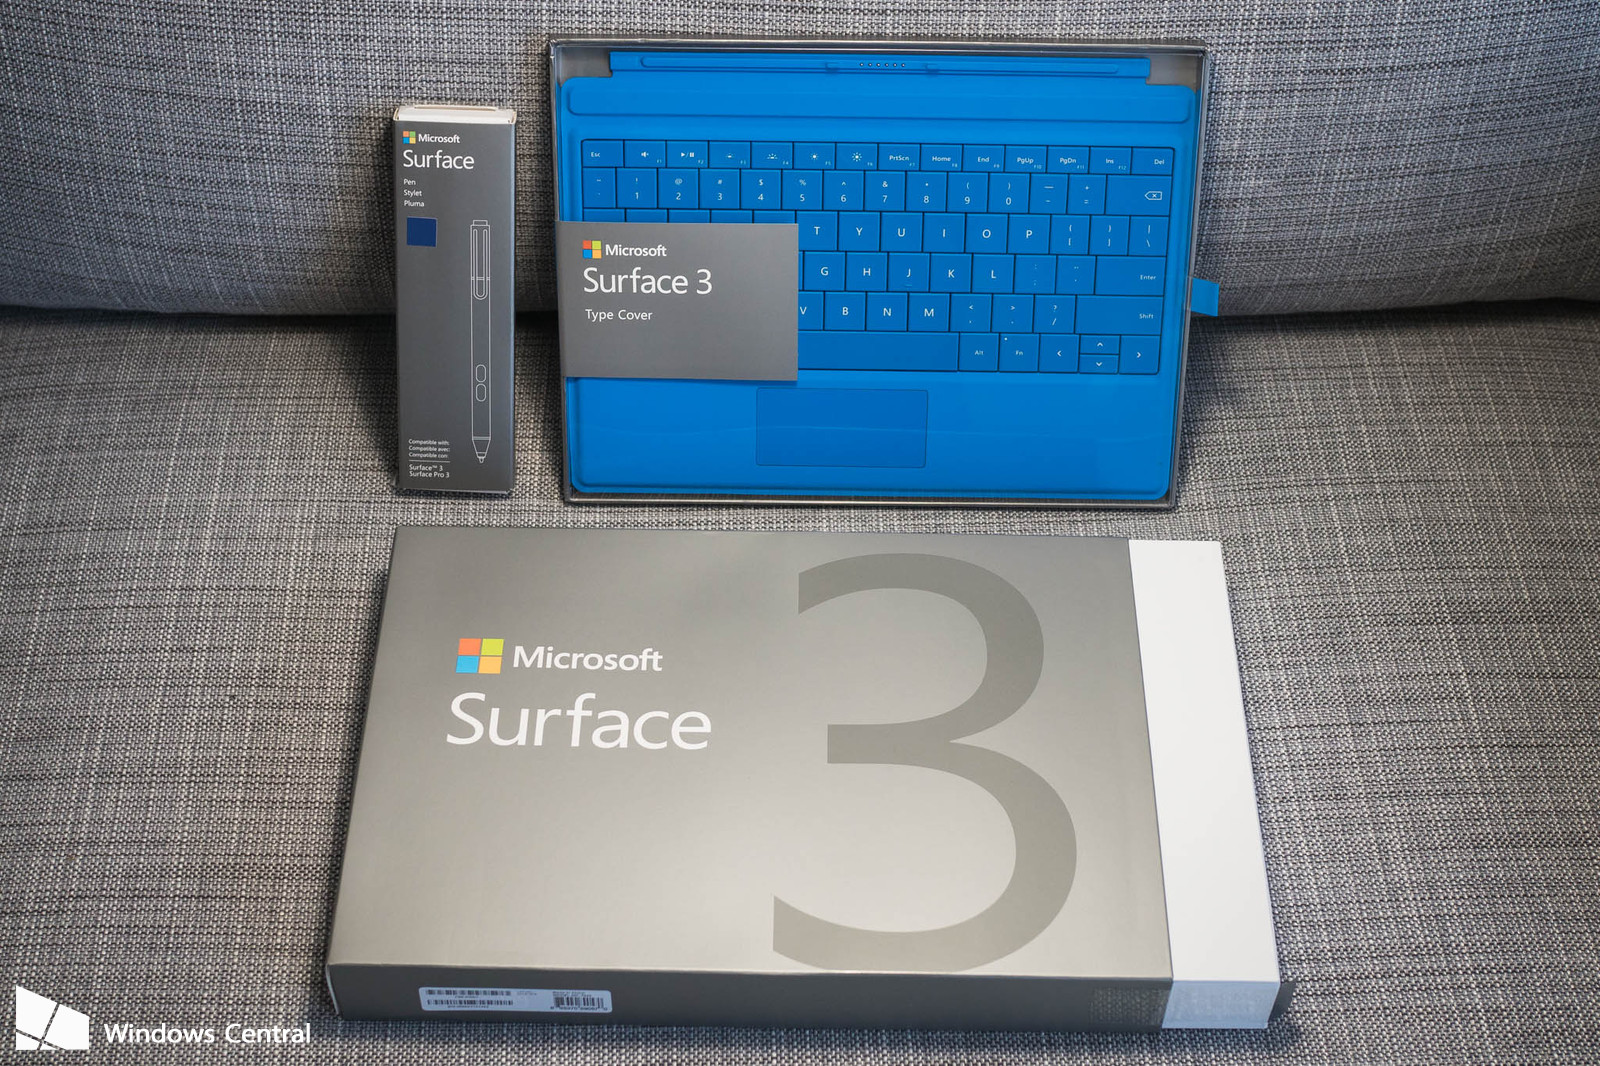 microsoft surface 3 + boxes